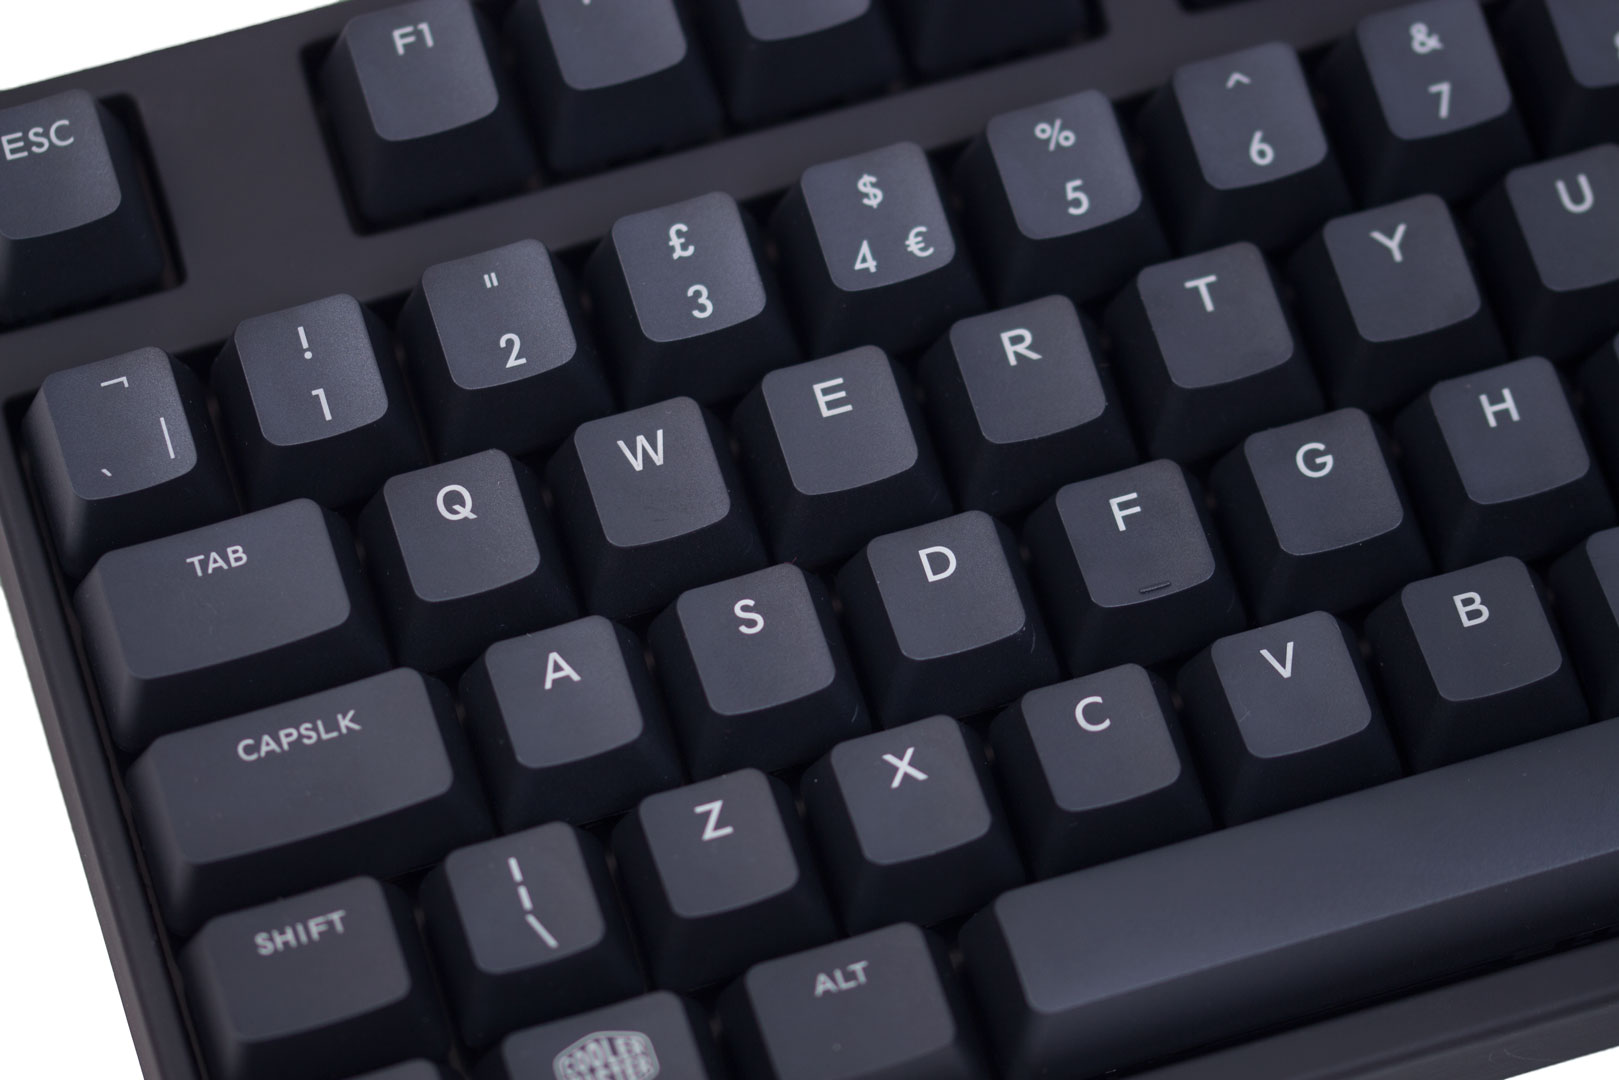 Computer input devices has introduced freestyle a range -  Keyboards We Have Looked At In The Past These Two Keyboards Have A Very Nice Clear Font Without Trying To Appeal To Gamers With A Hard To Read Mess